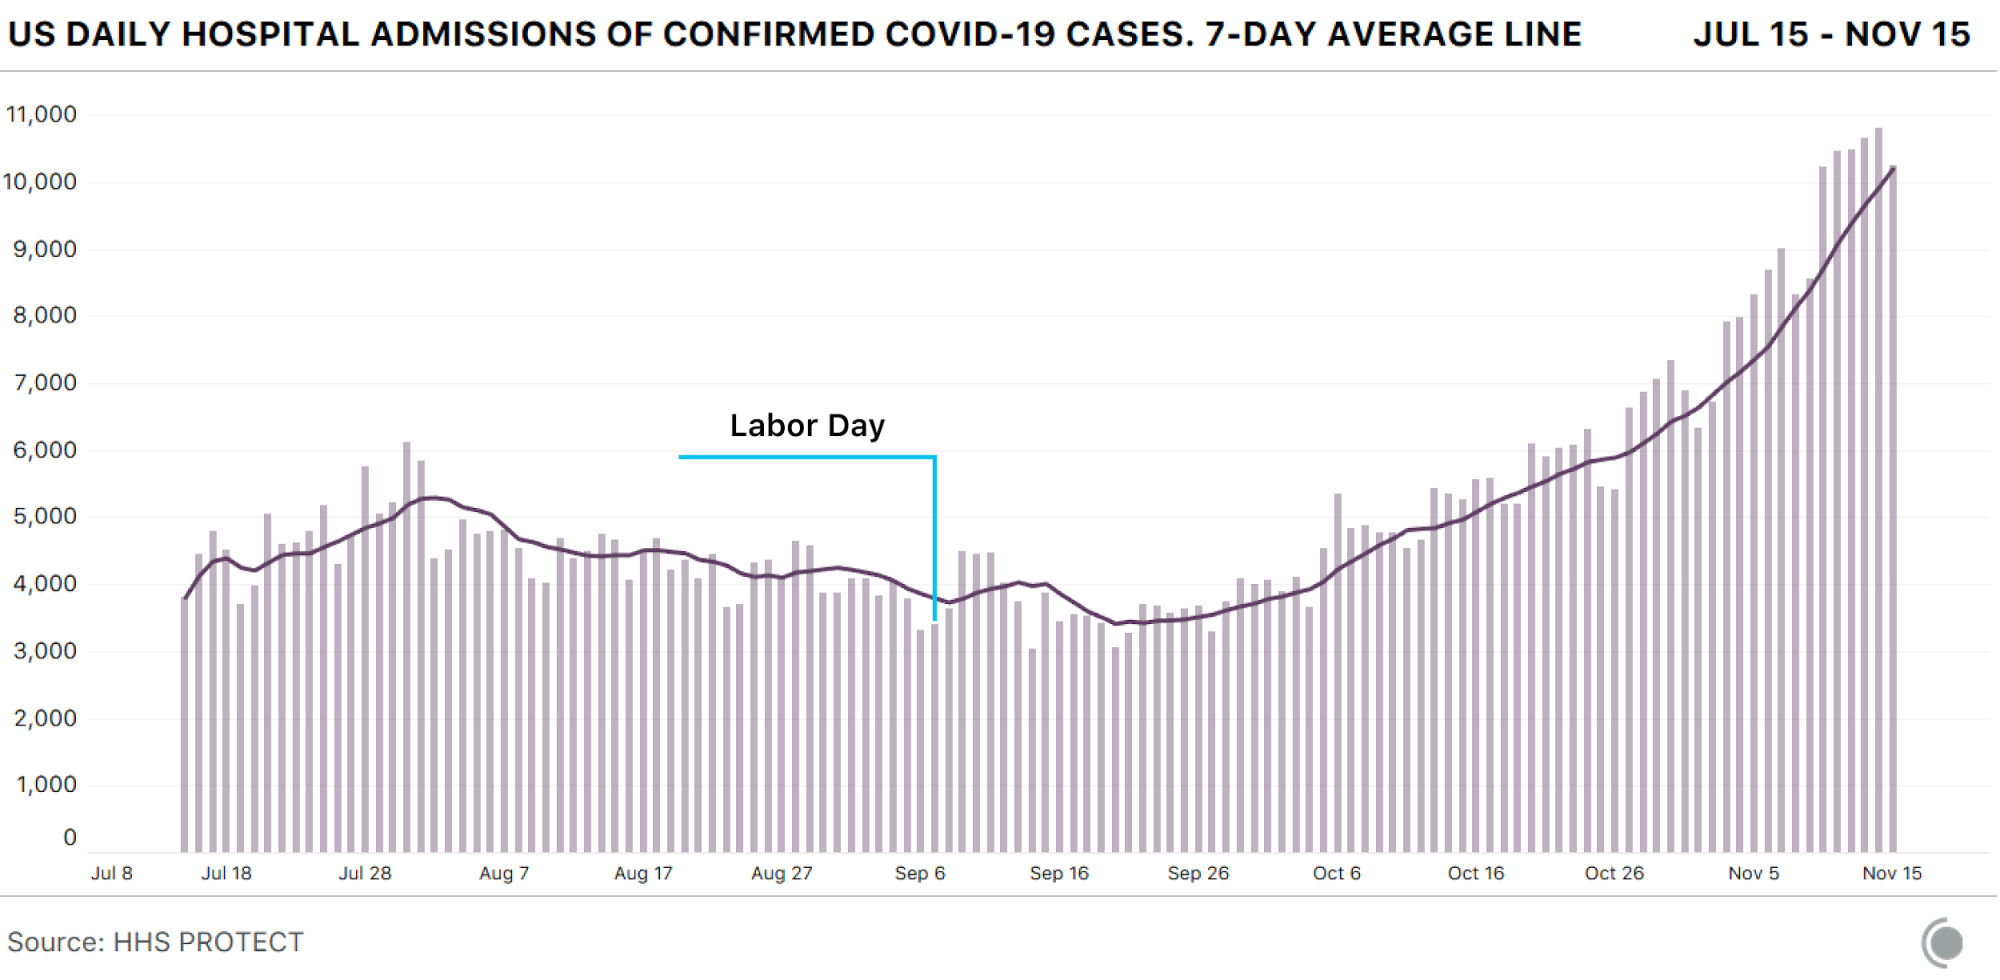 Bar chart showing US daily hospital admissions from COVID-19. These are at record highs over the past week. The data was generally not affected by the Labor Day holiday.